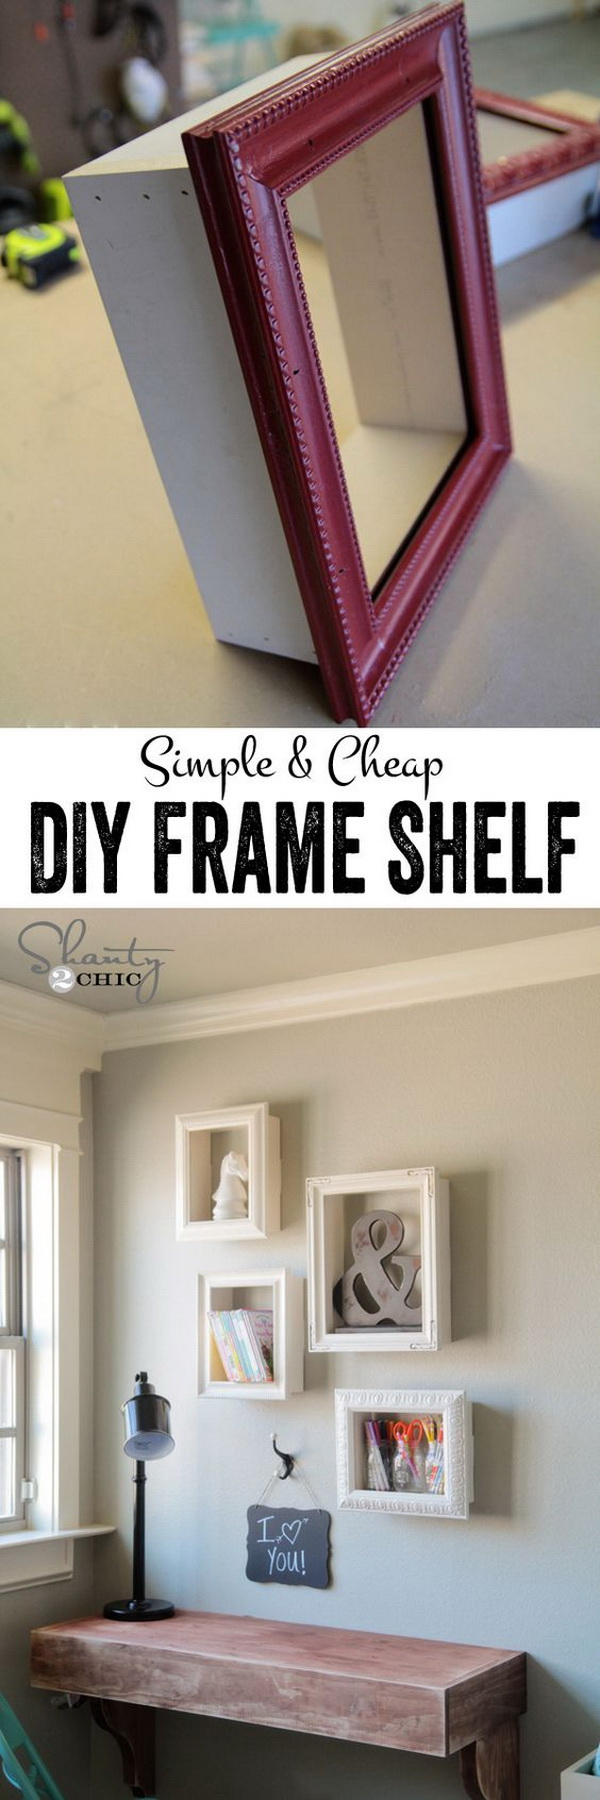 DIY Frame Shelves. Recycle the old frames into these creative shelves for display or storage!